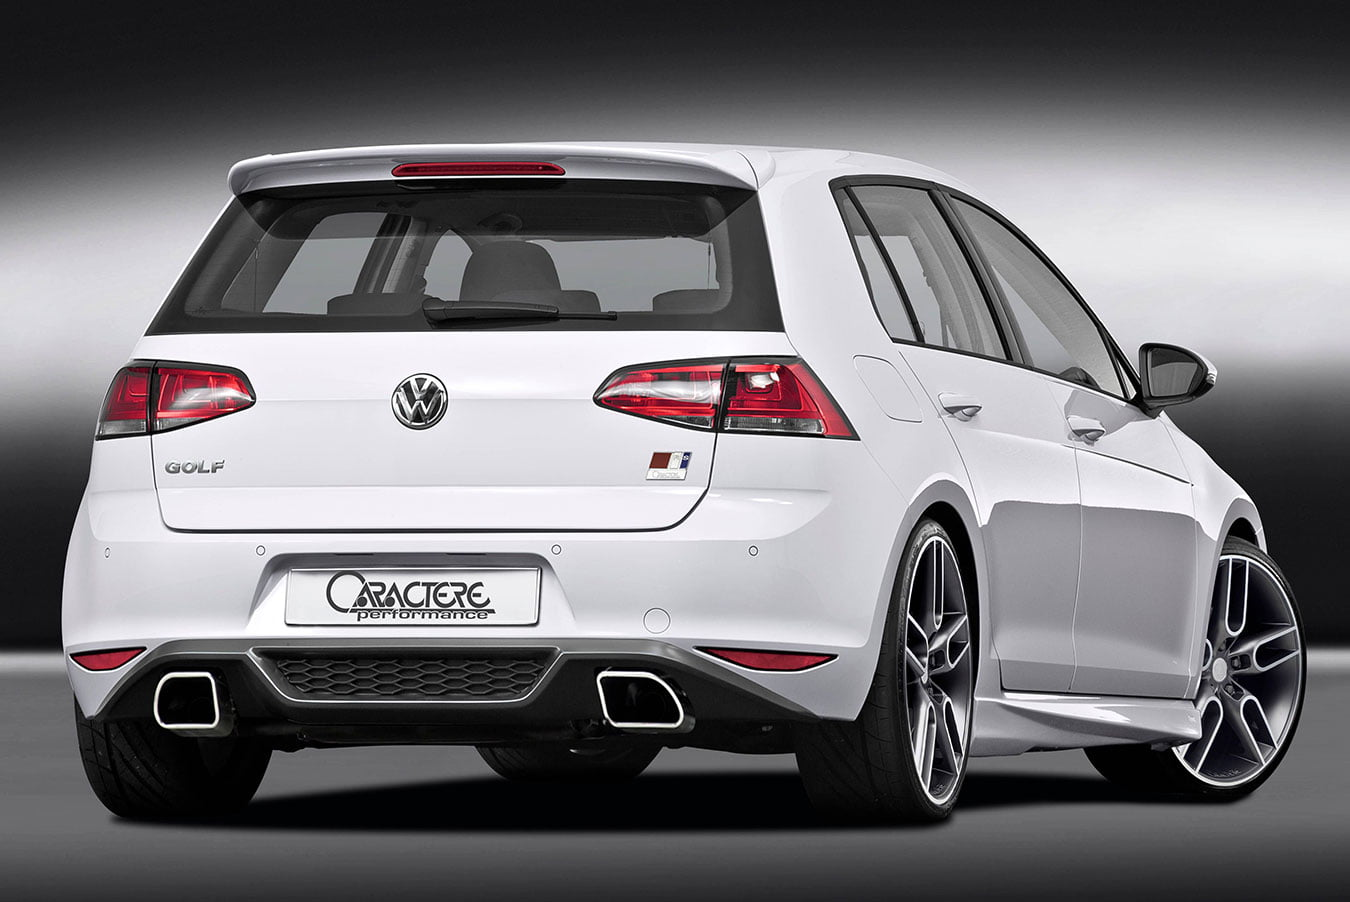 Golf 7 Rear Diffuser with Caractere Exhaust